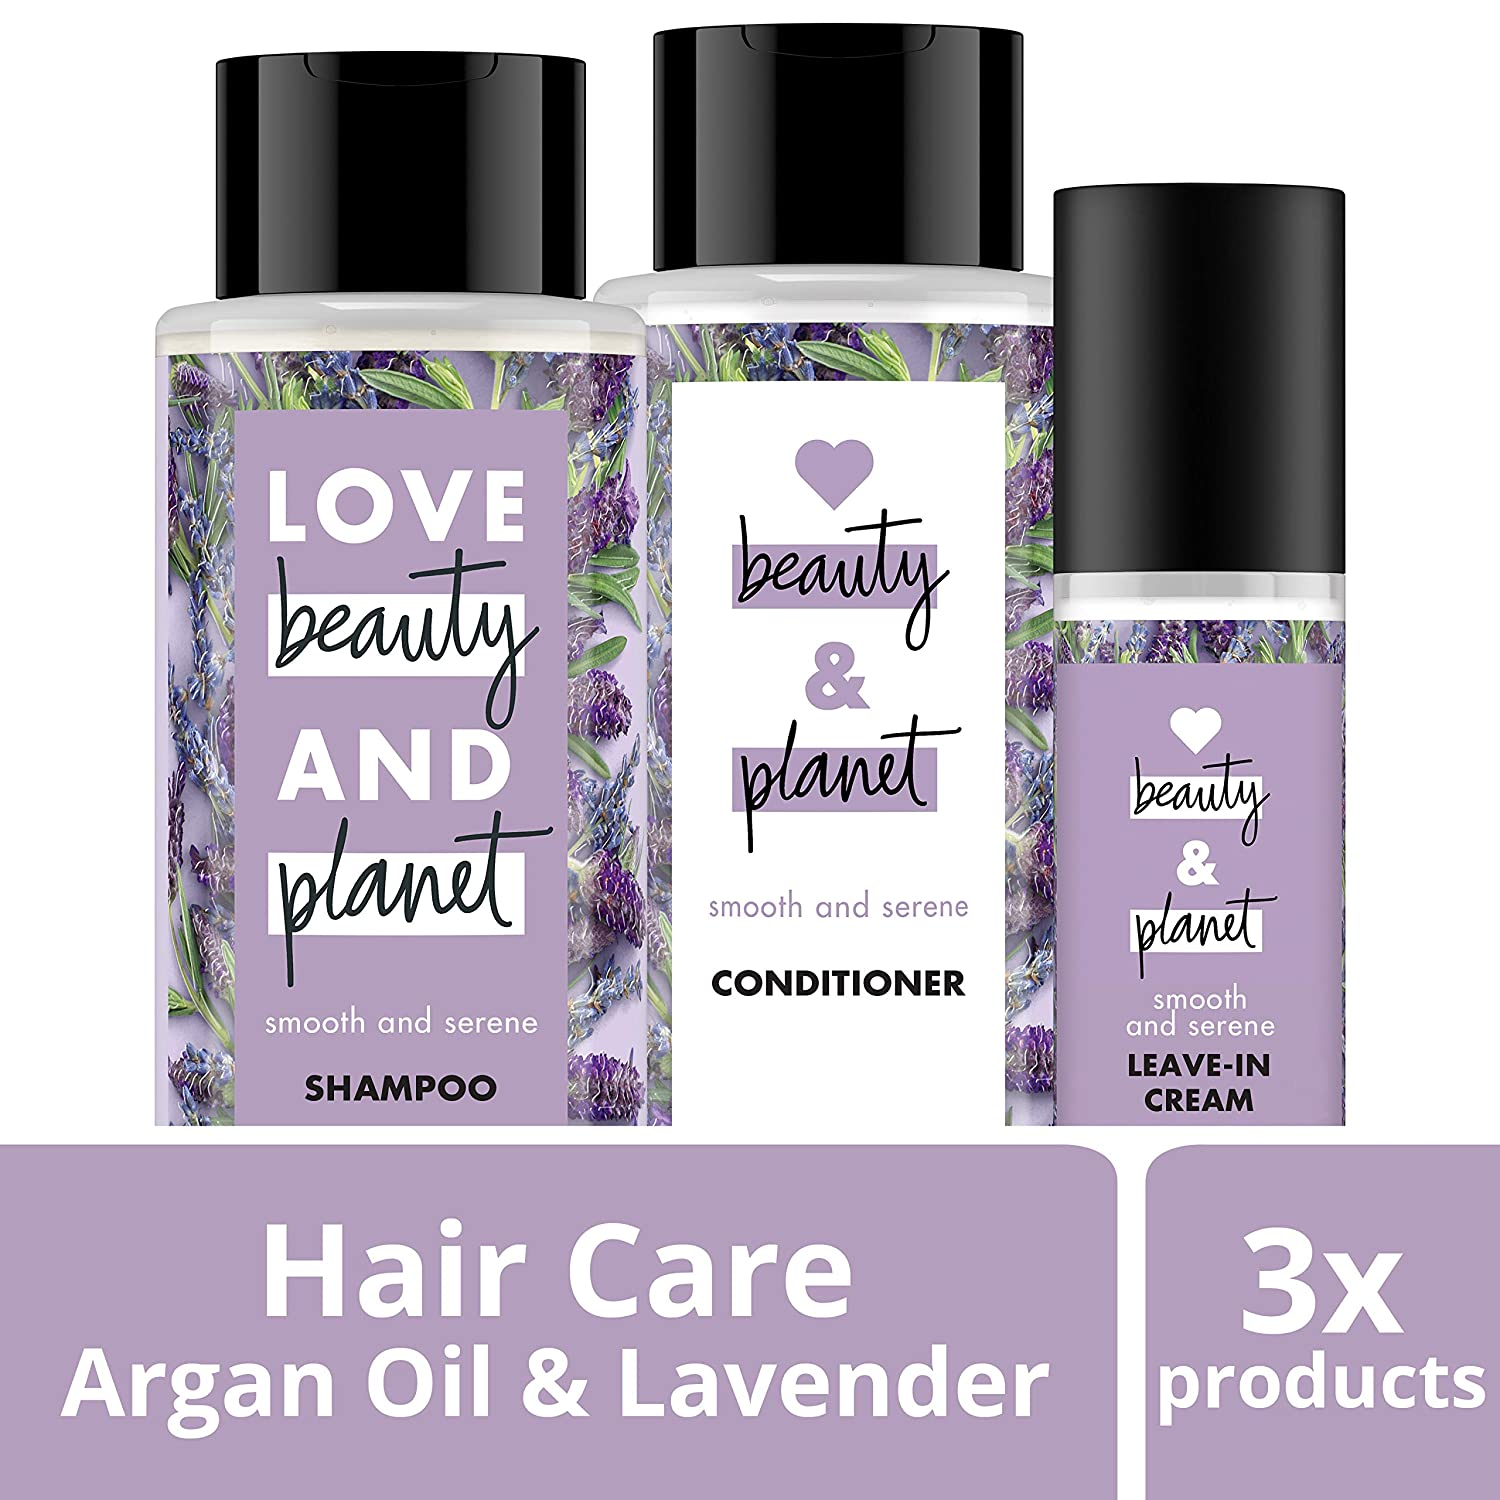 Love Beauty And Planet Shampoo, Conditioner and Leave In Cream Argan Oil and Lavender 3 count